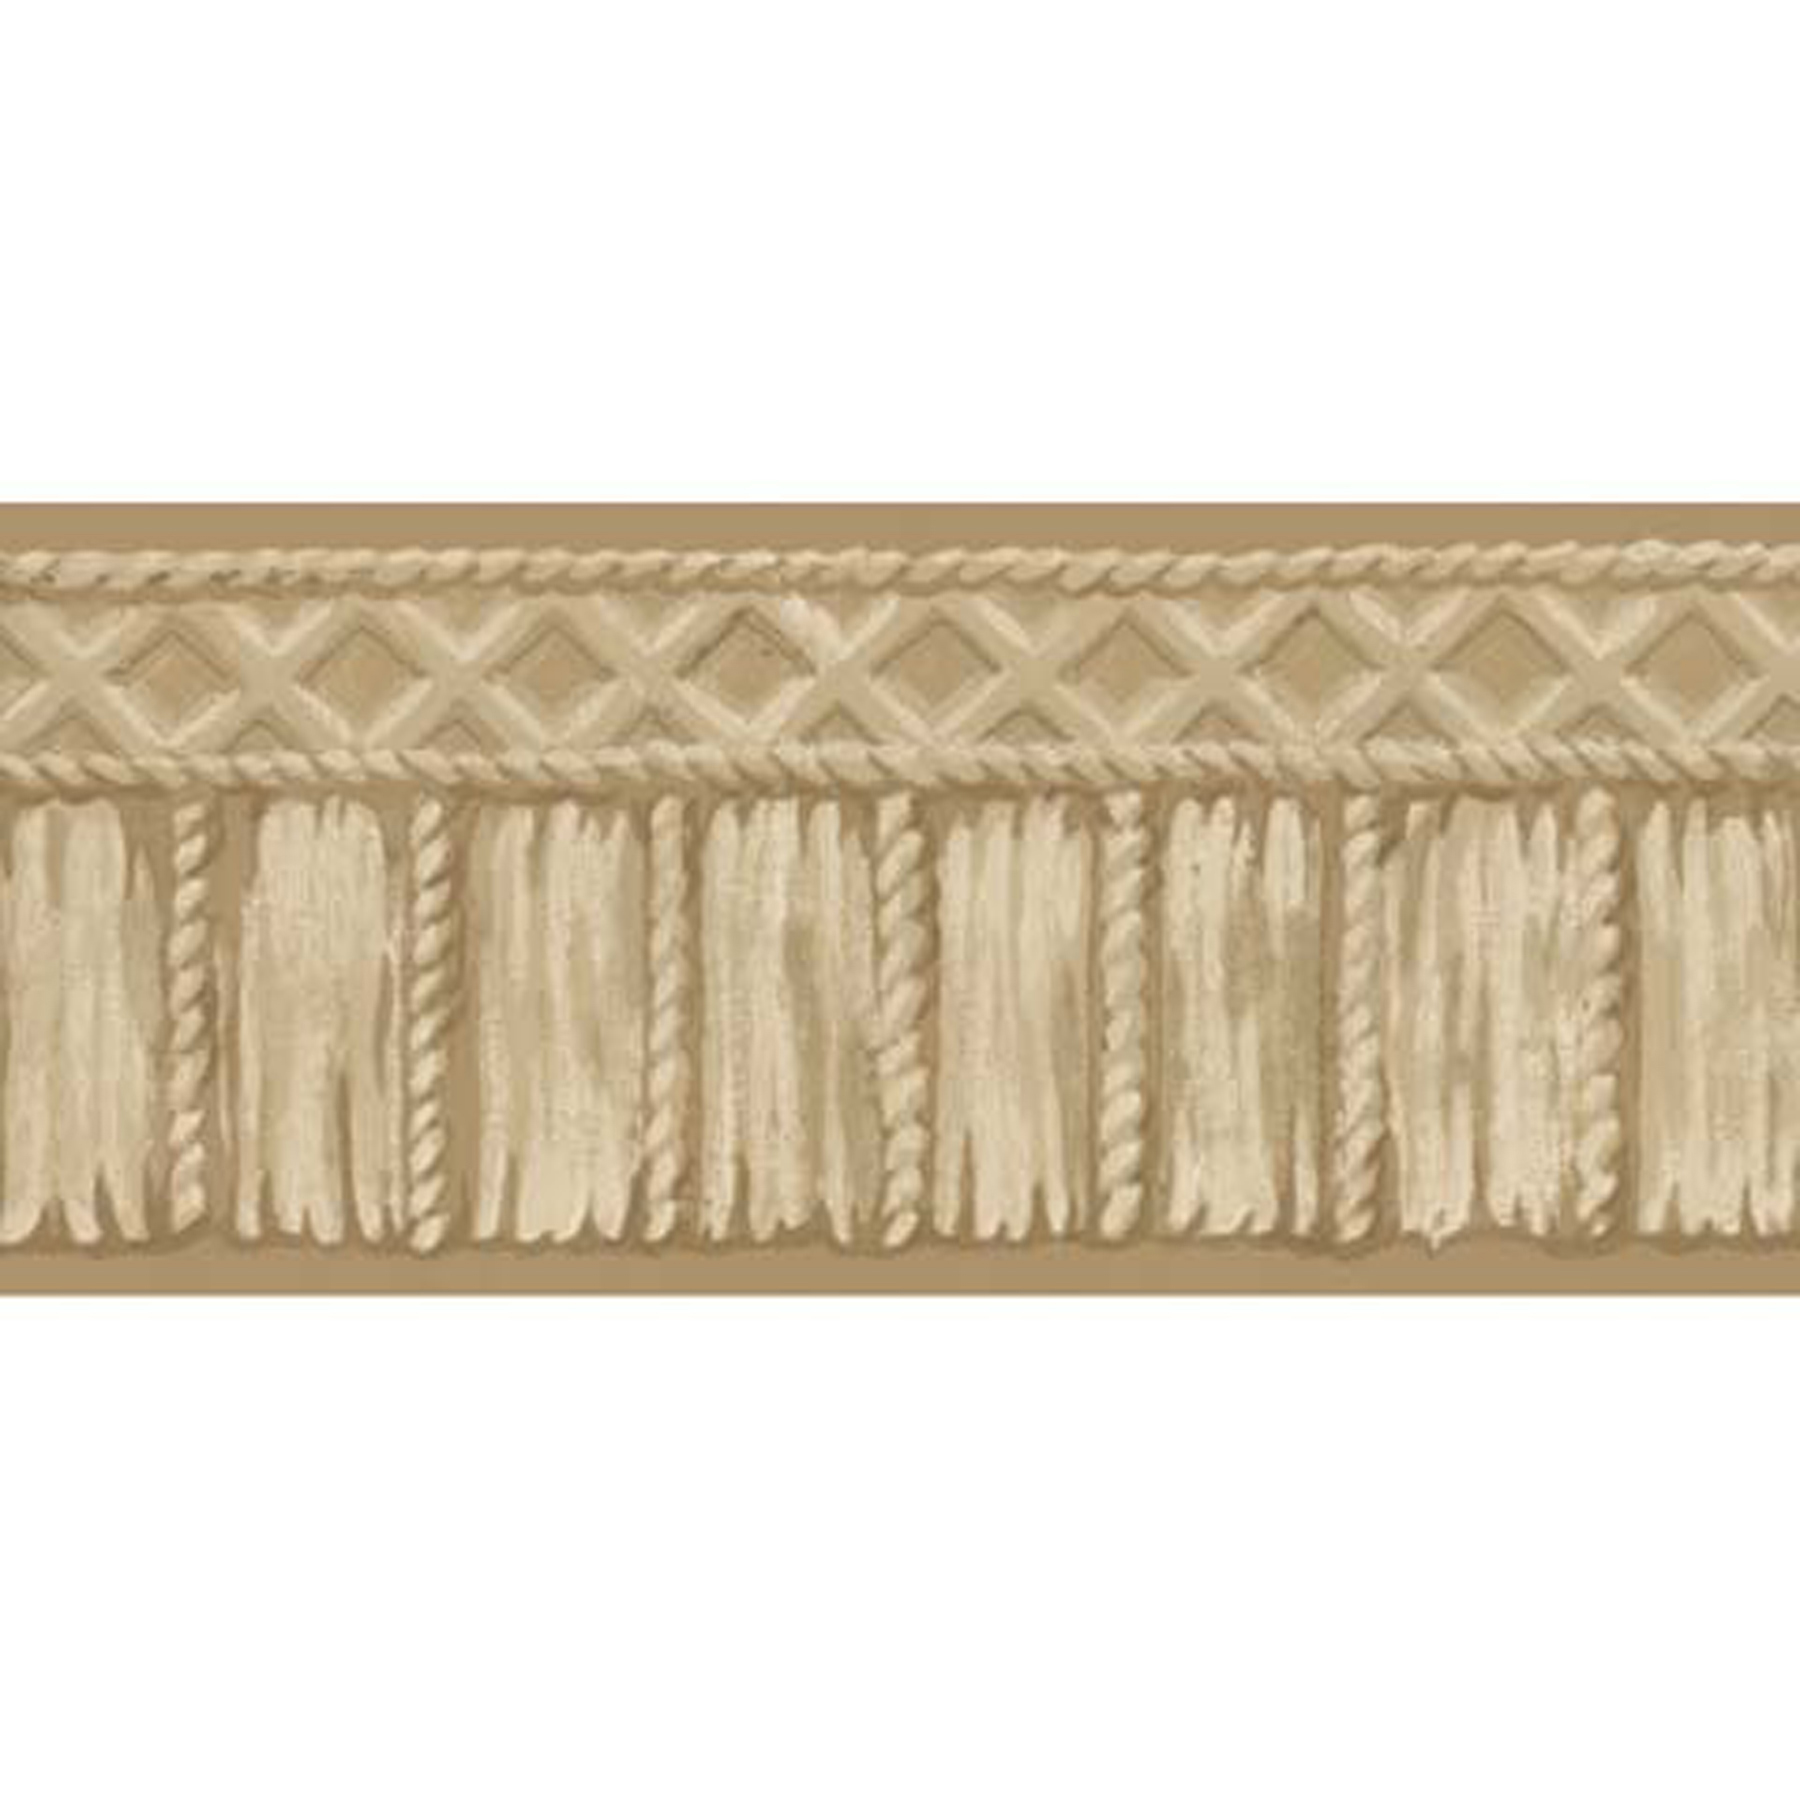 Picture of Beige Tribal Rope Border